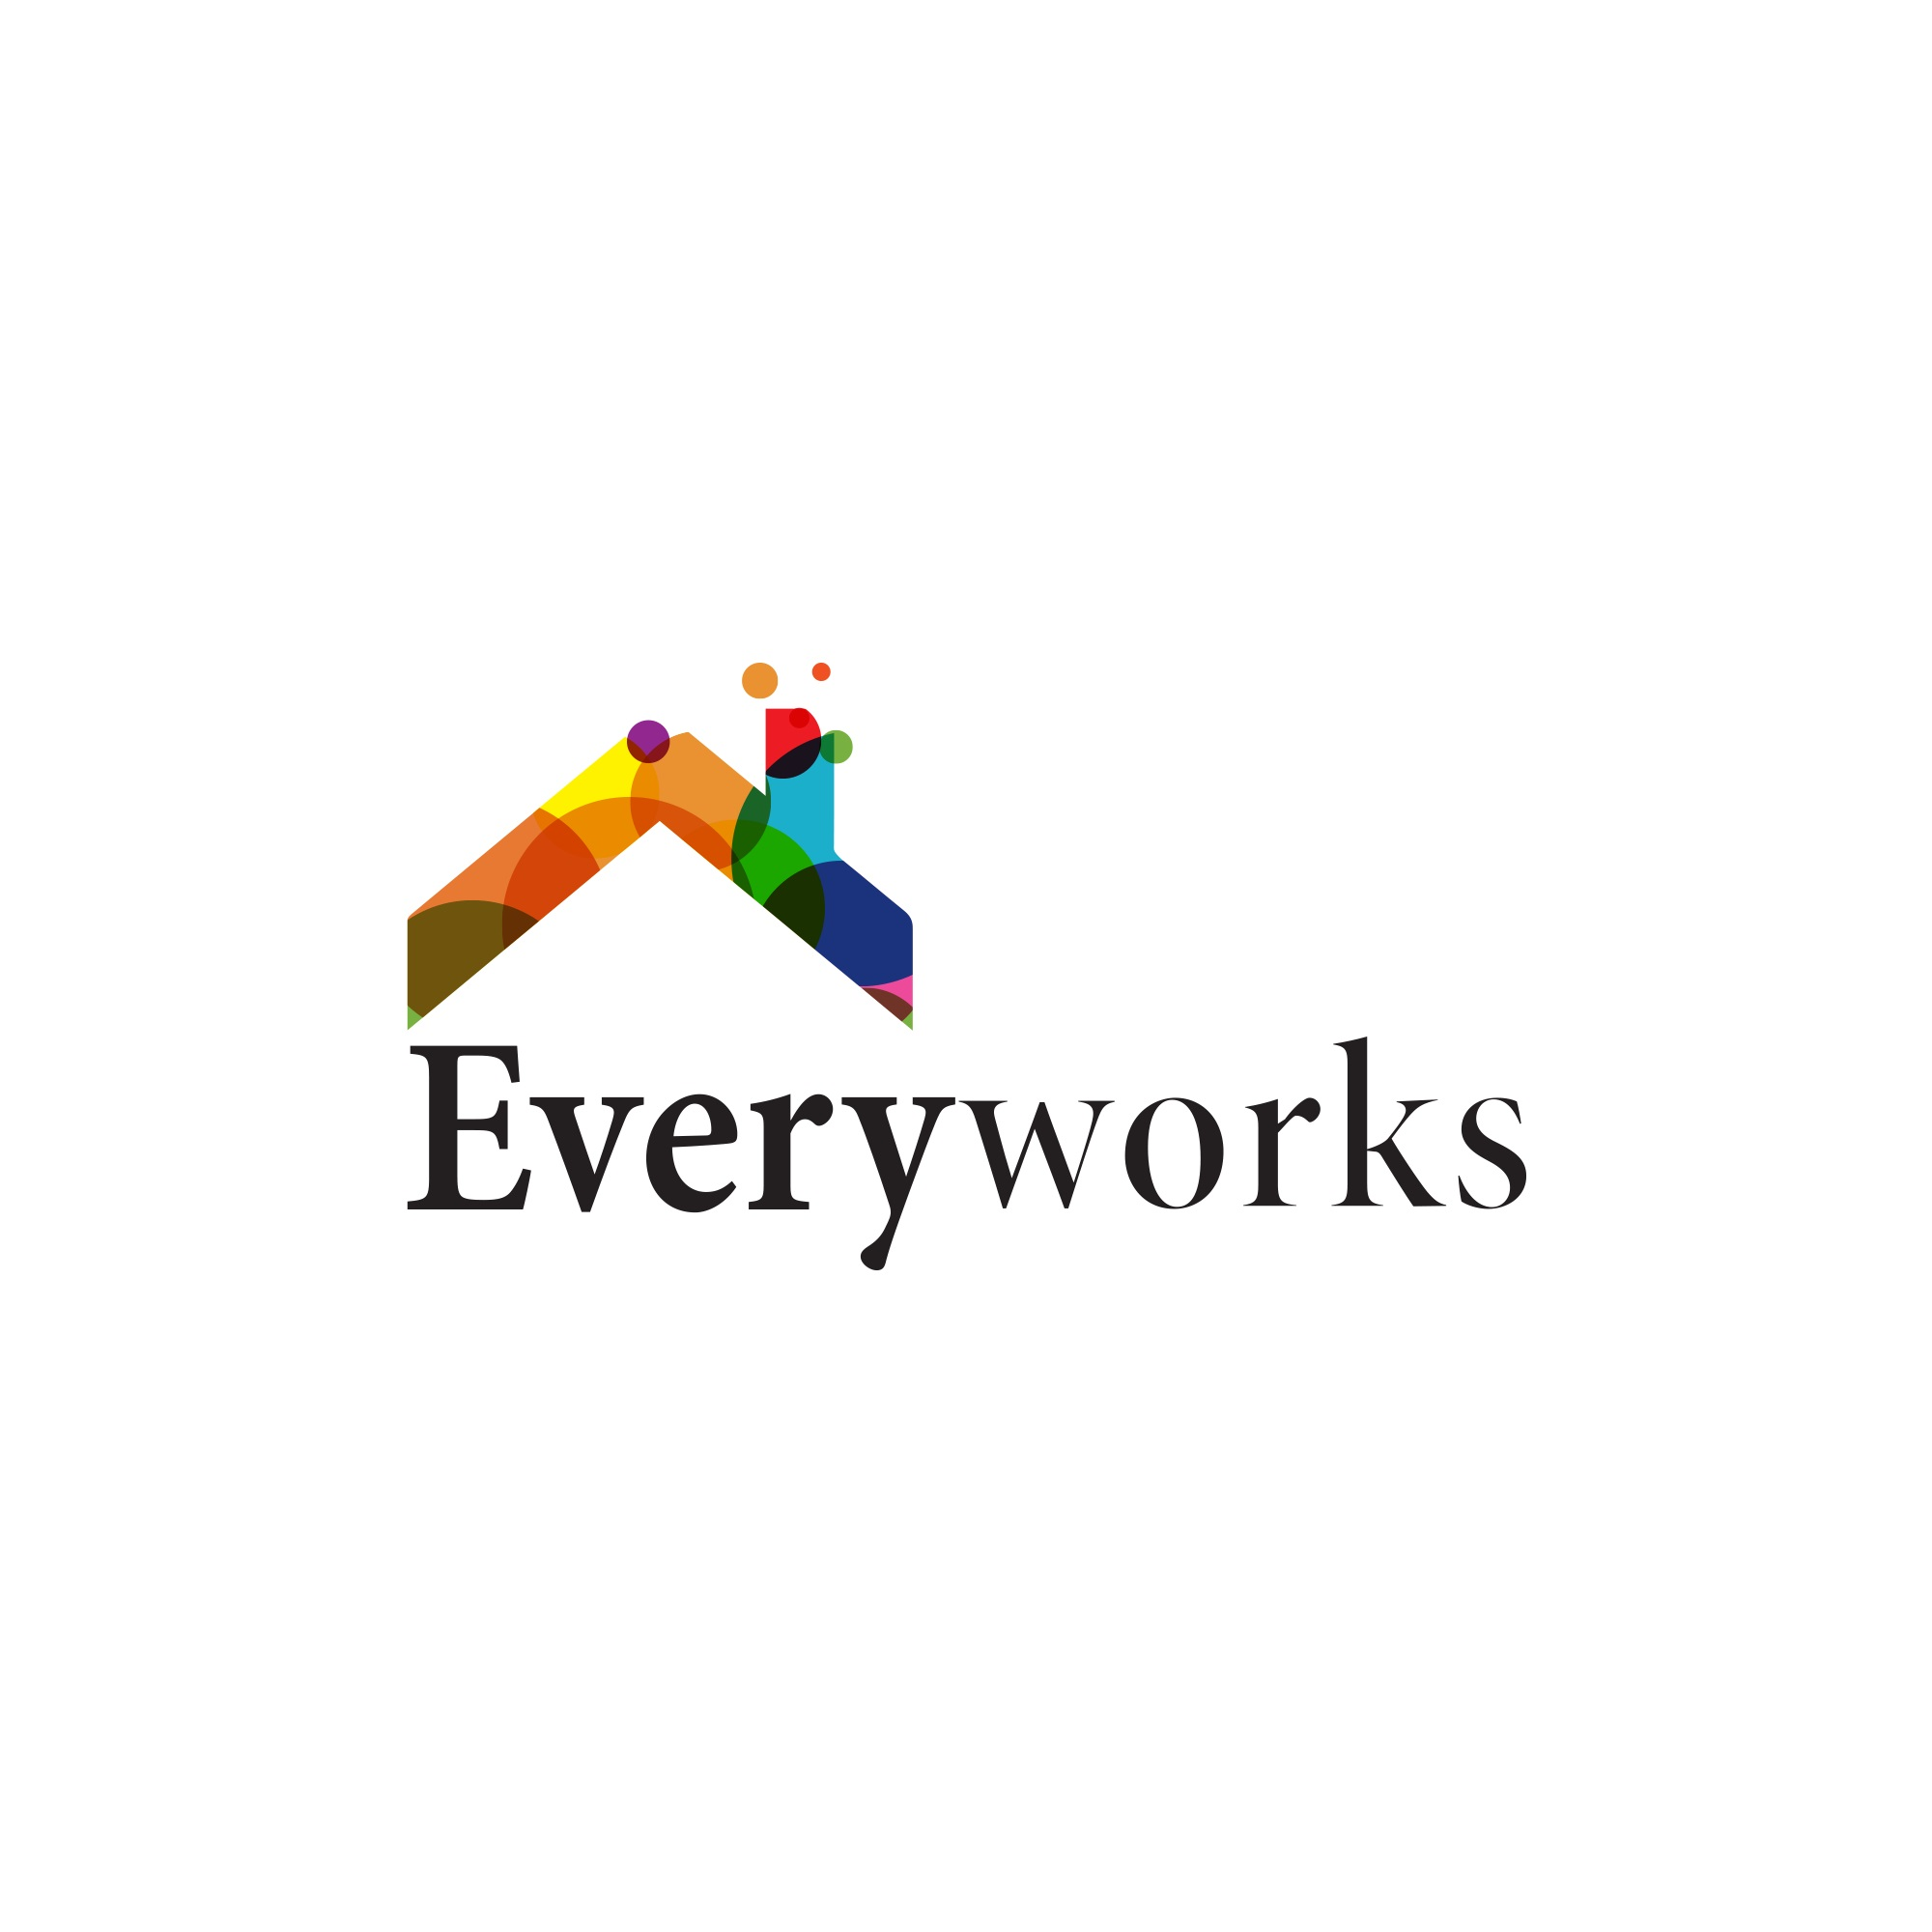 Everyworks Singapore Announces The Launch Of Their Enhanced Home Services Network